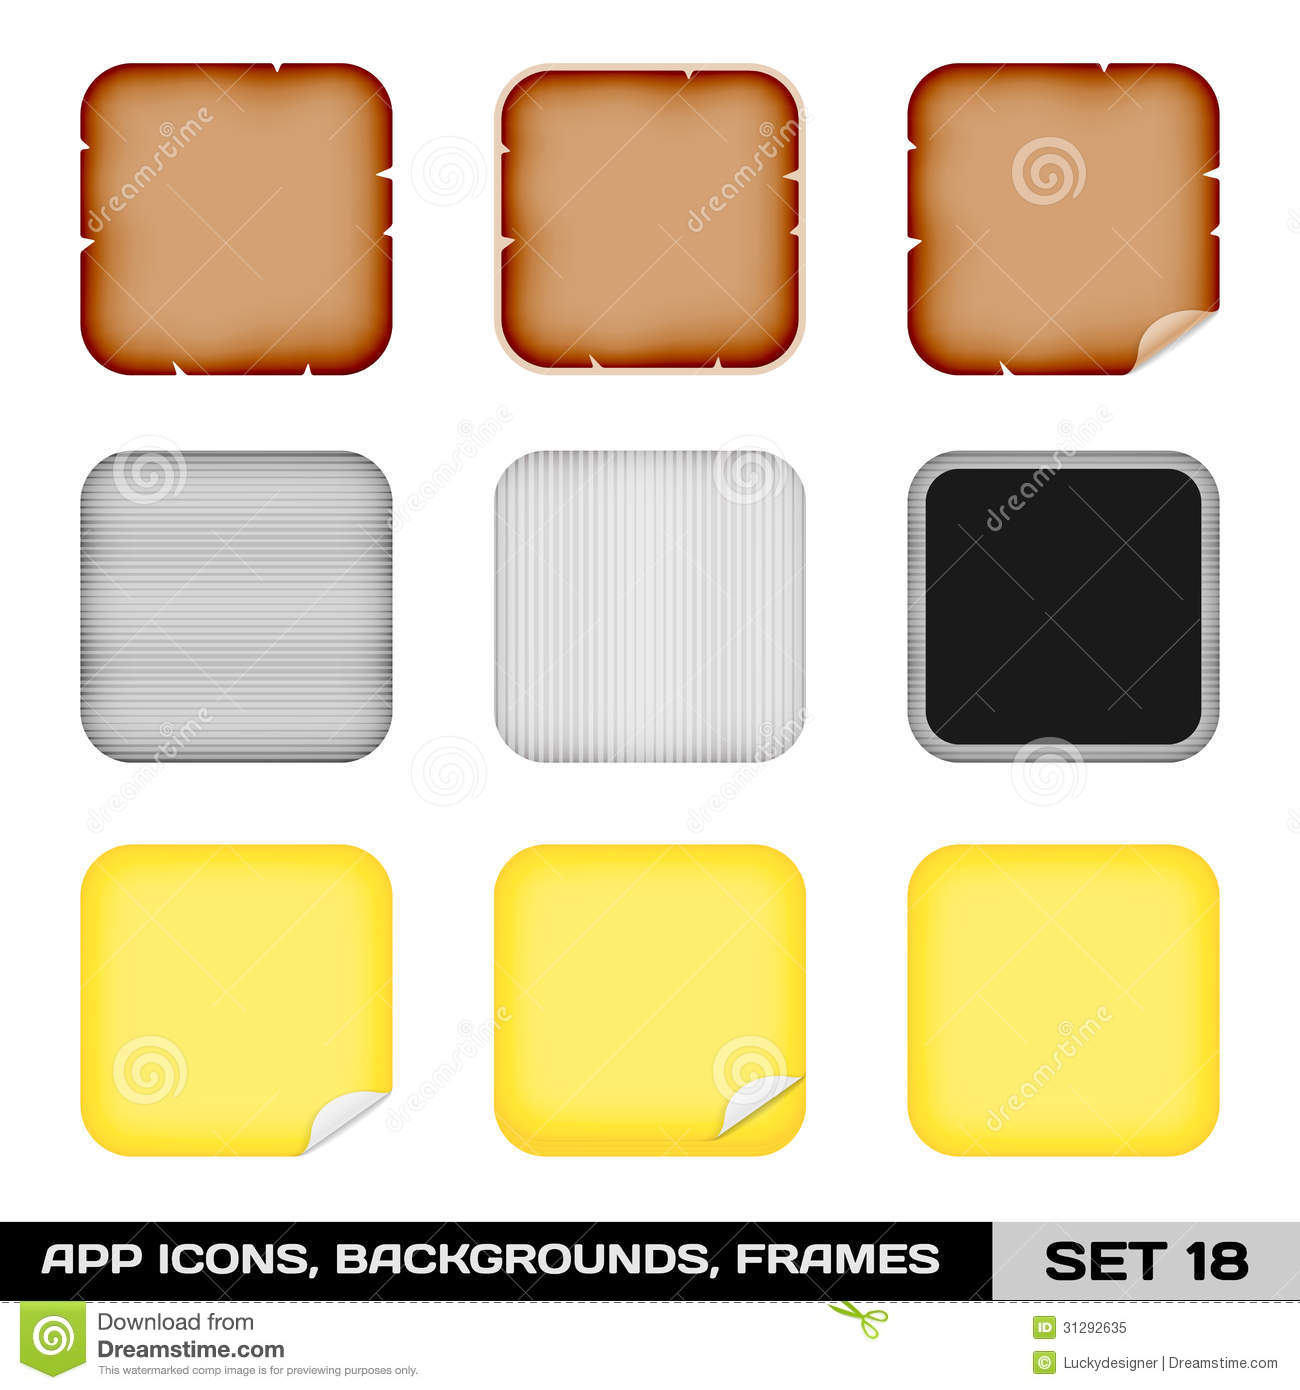 Set Of App Icon Frames, Templates, Backgrounds. Set 18 Stock Vector ...